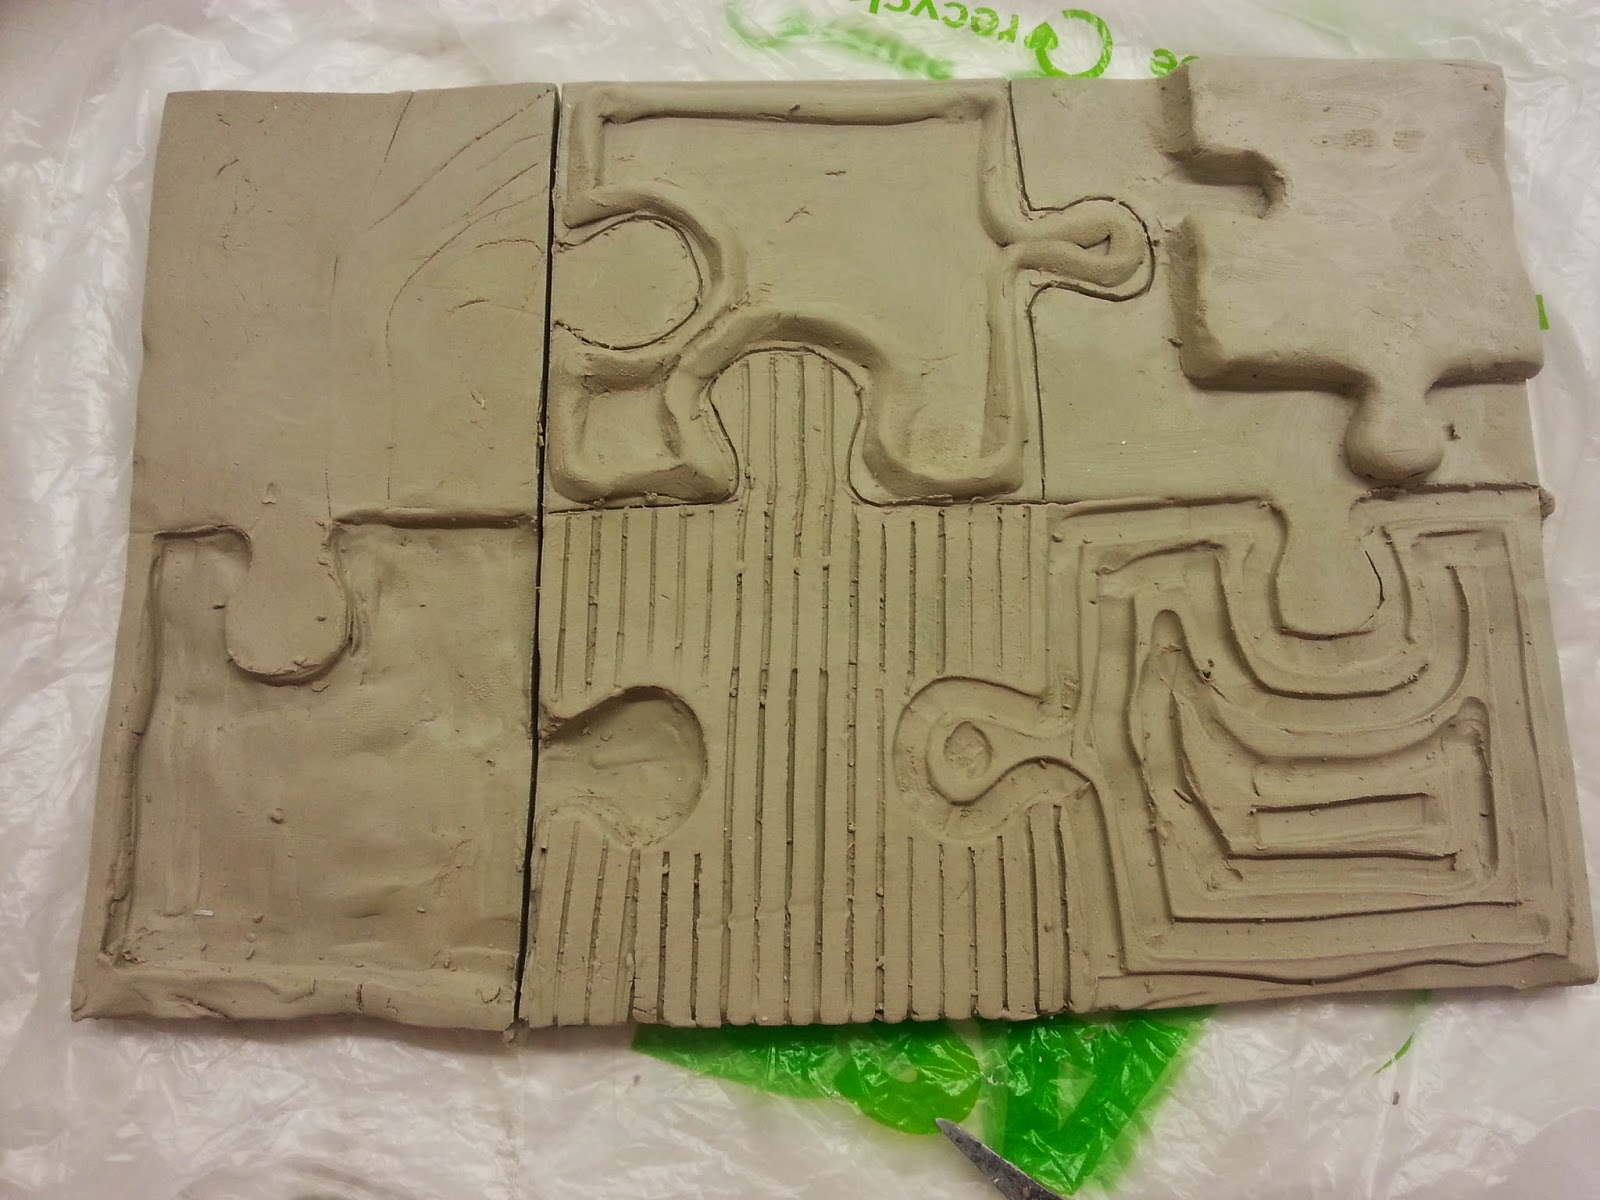 Art and Design: Low Relief Clay Tiles & 3D ceramic